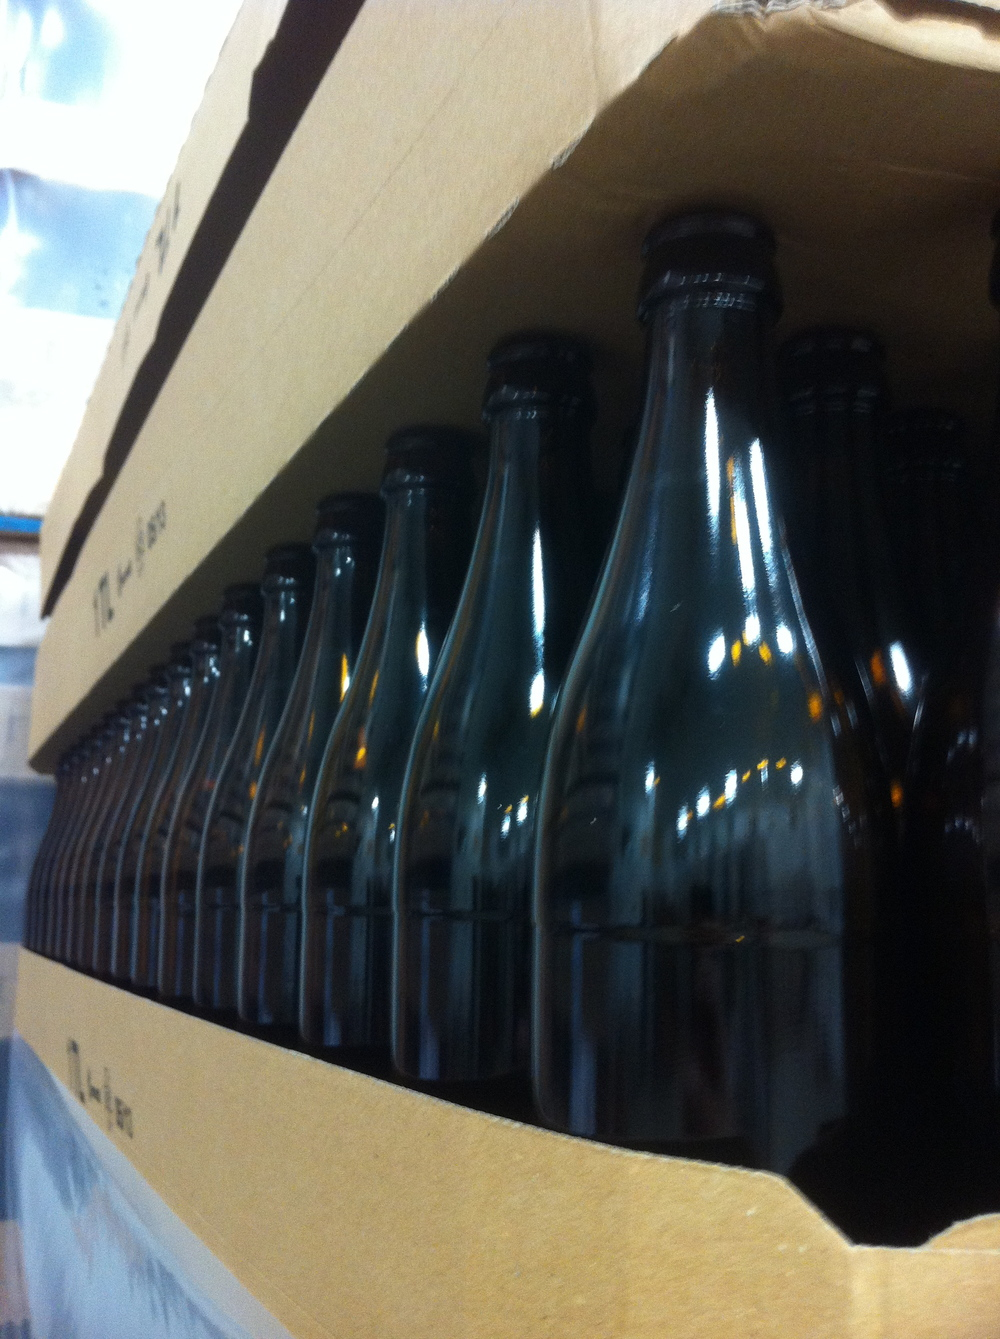 Special bottles imported from Germany, Maine Beer Company, Freeport